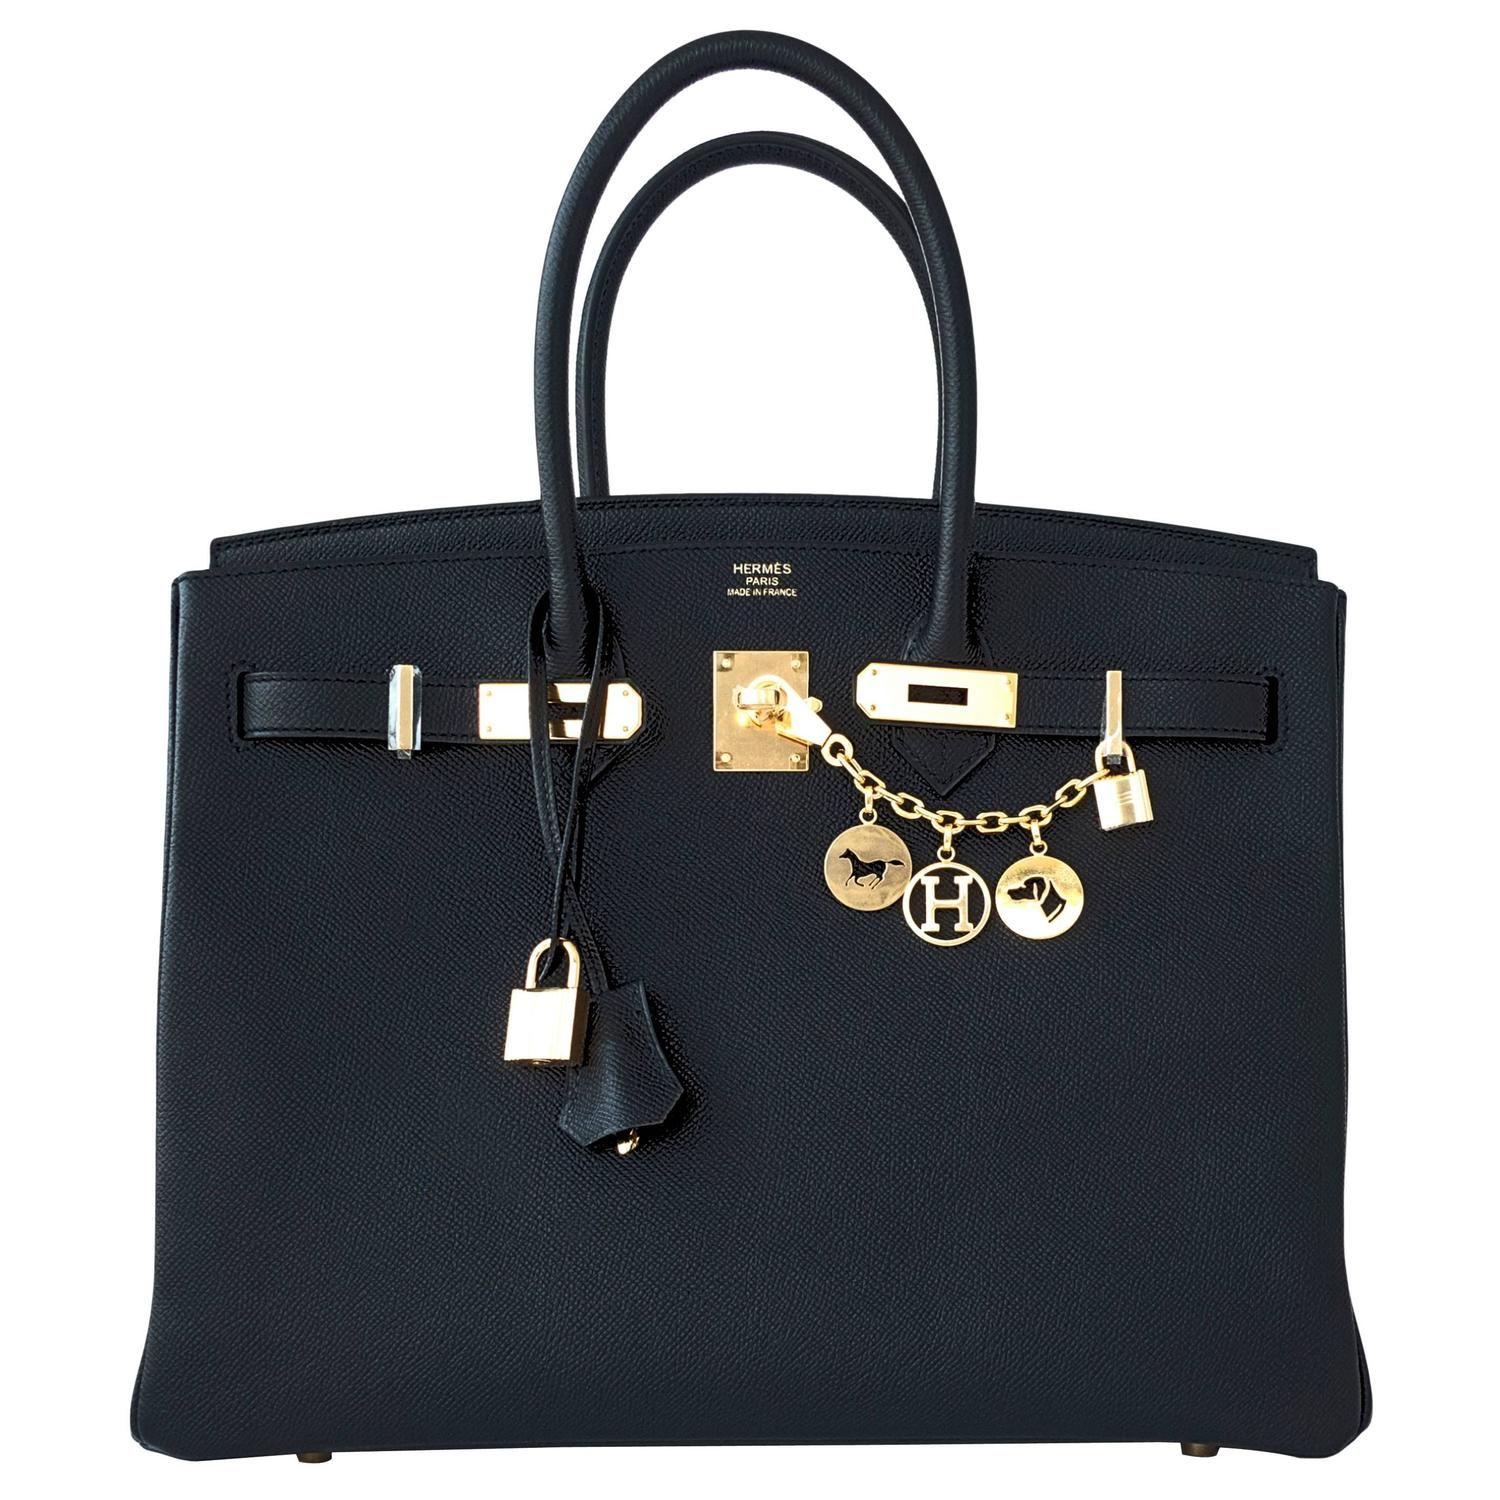 c49939f41d60 ... shopping easier to diy attach ready made charm bracelet to bag. hermes  birkin bag black